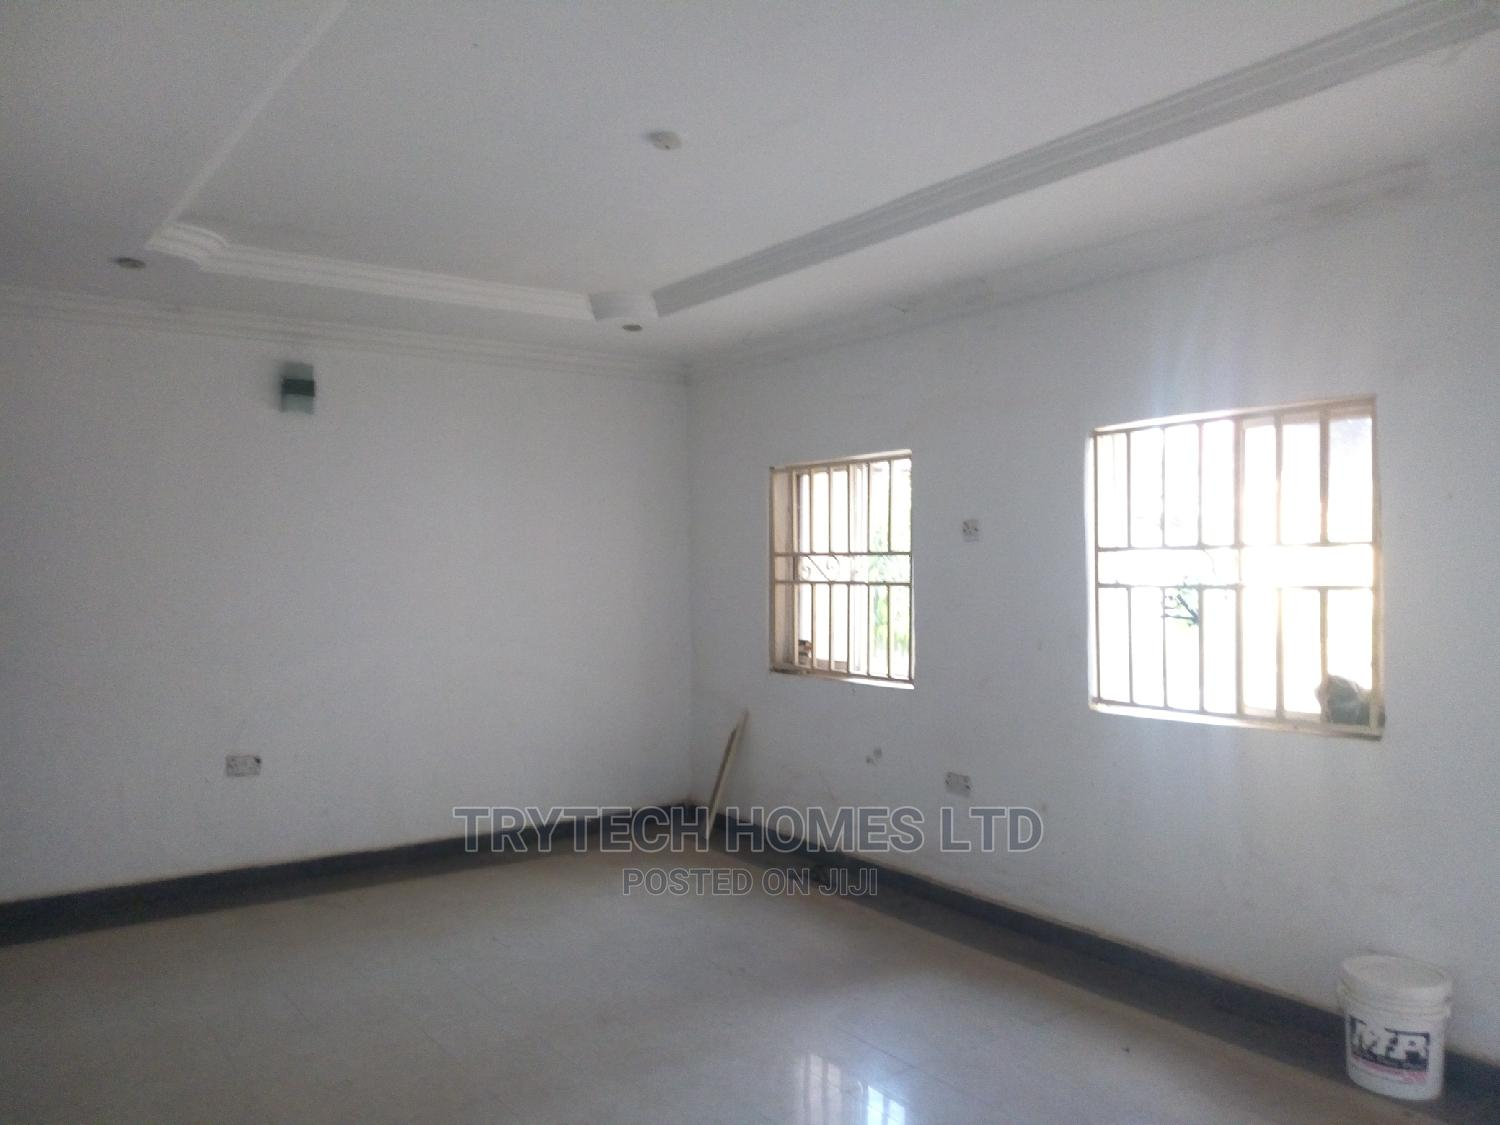 3bdrm Bungalow in Gwarinpa for Rent